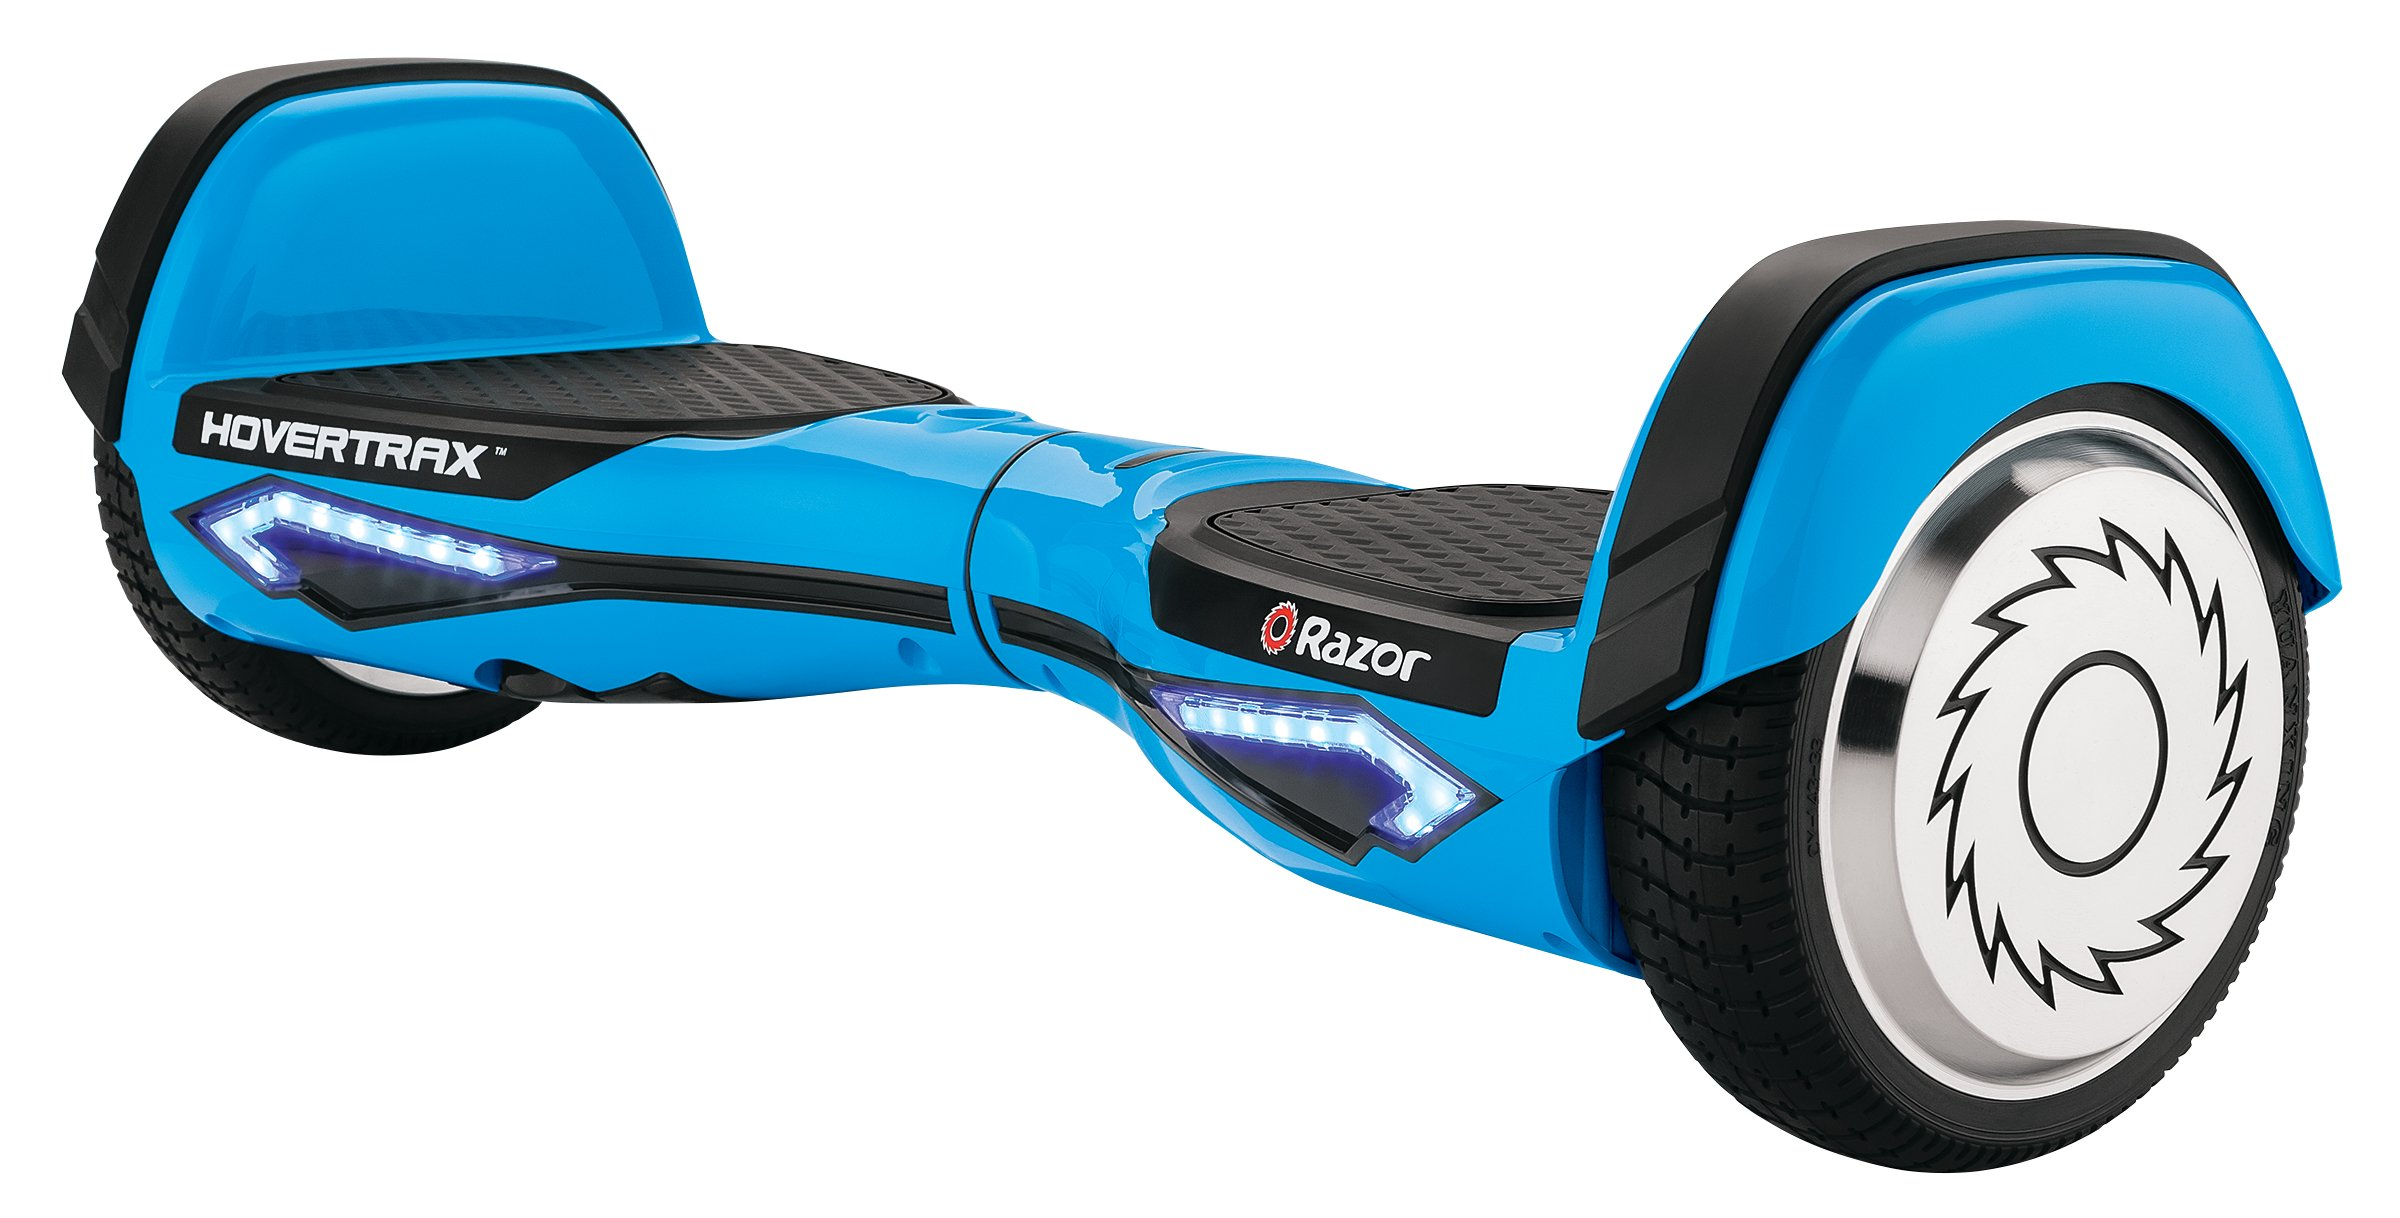 Razor Hovertrax 2.0 Hoverboard Self-Balancing Smart Scooter - Blue by Razor